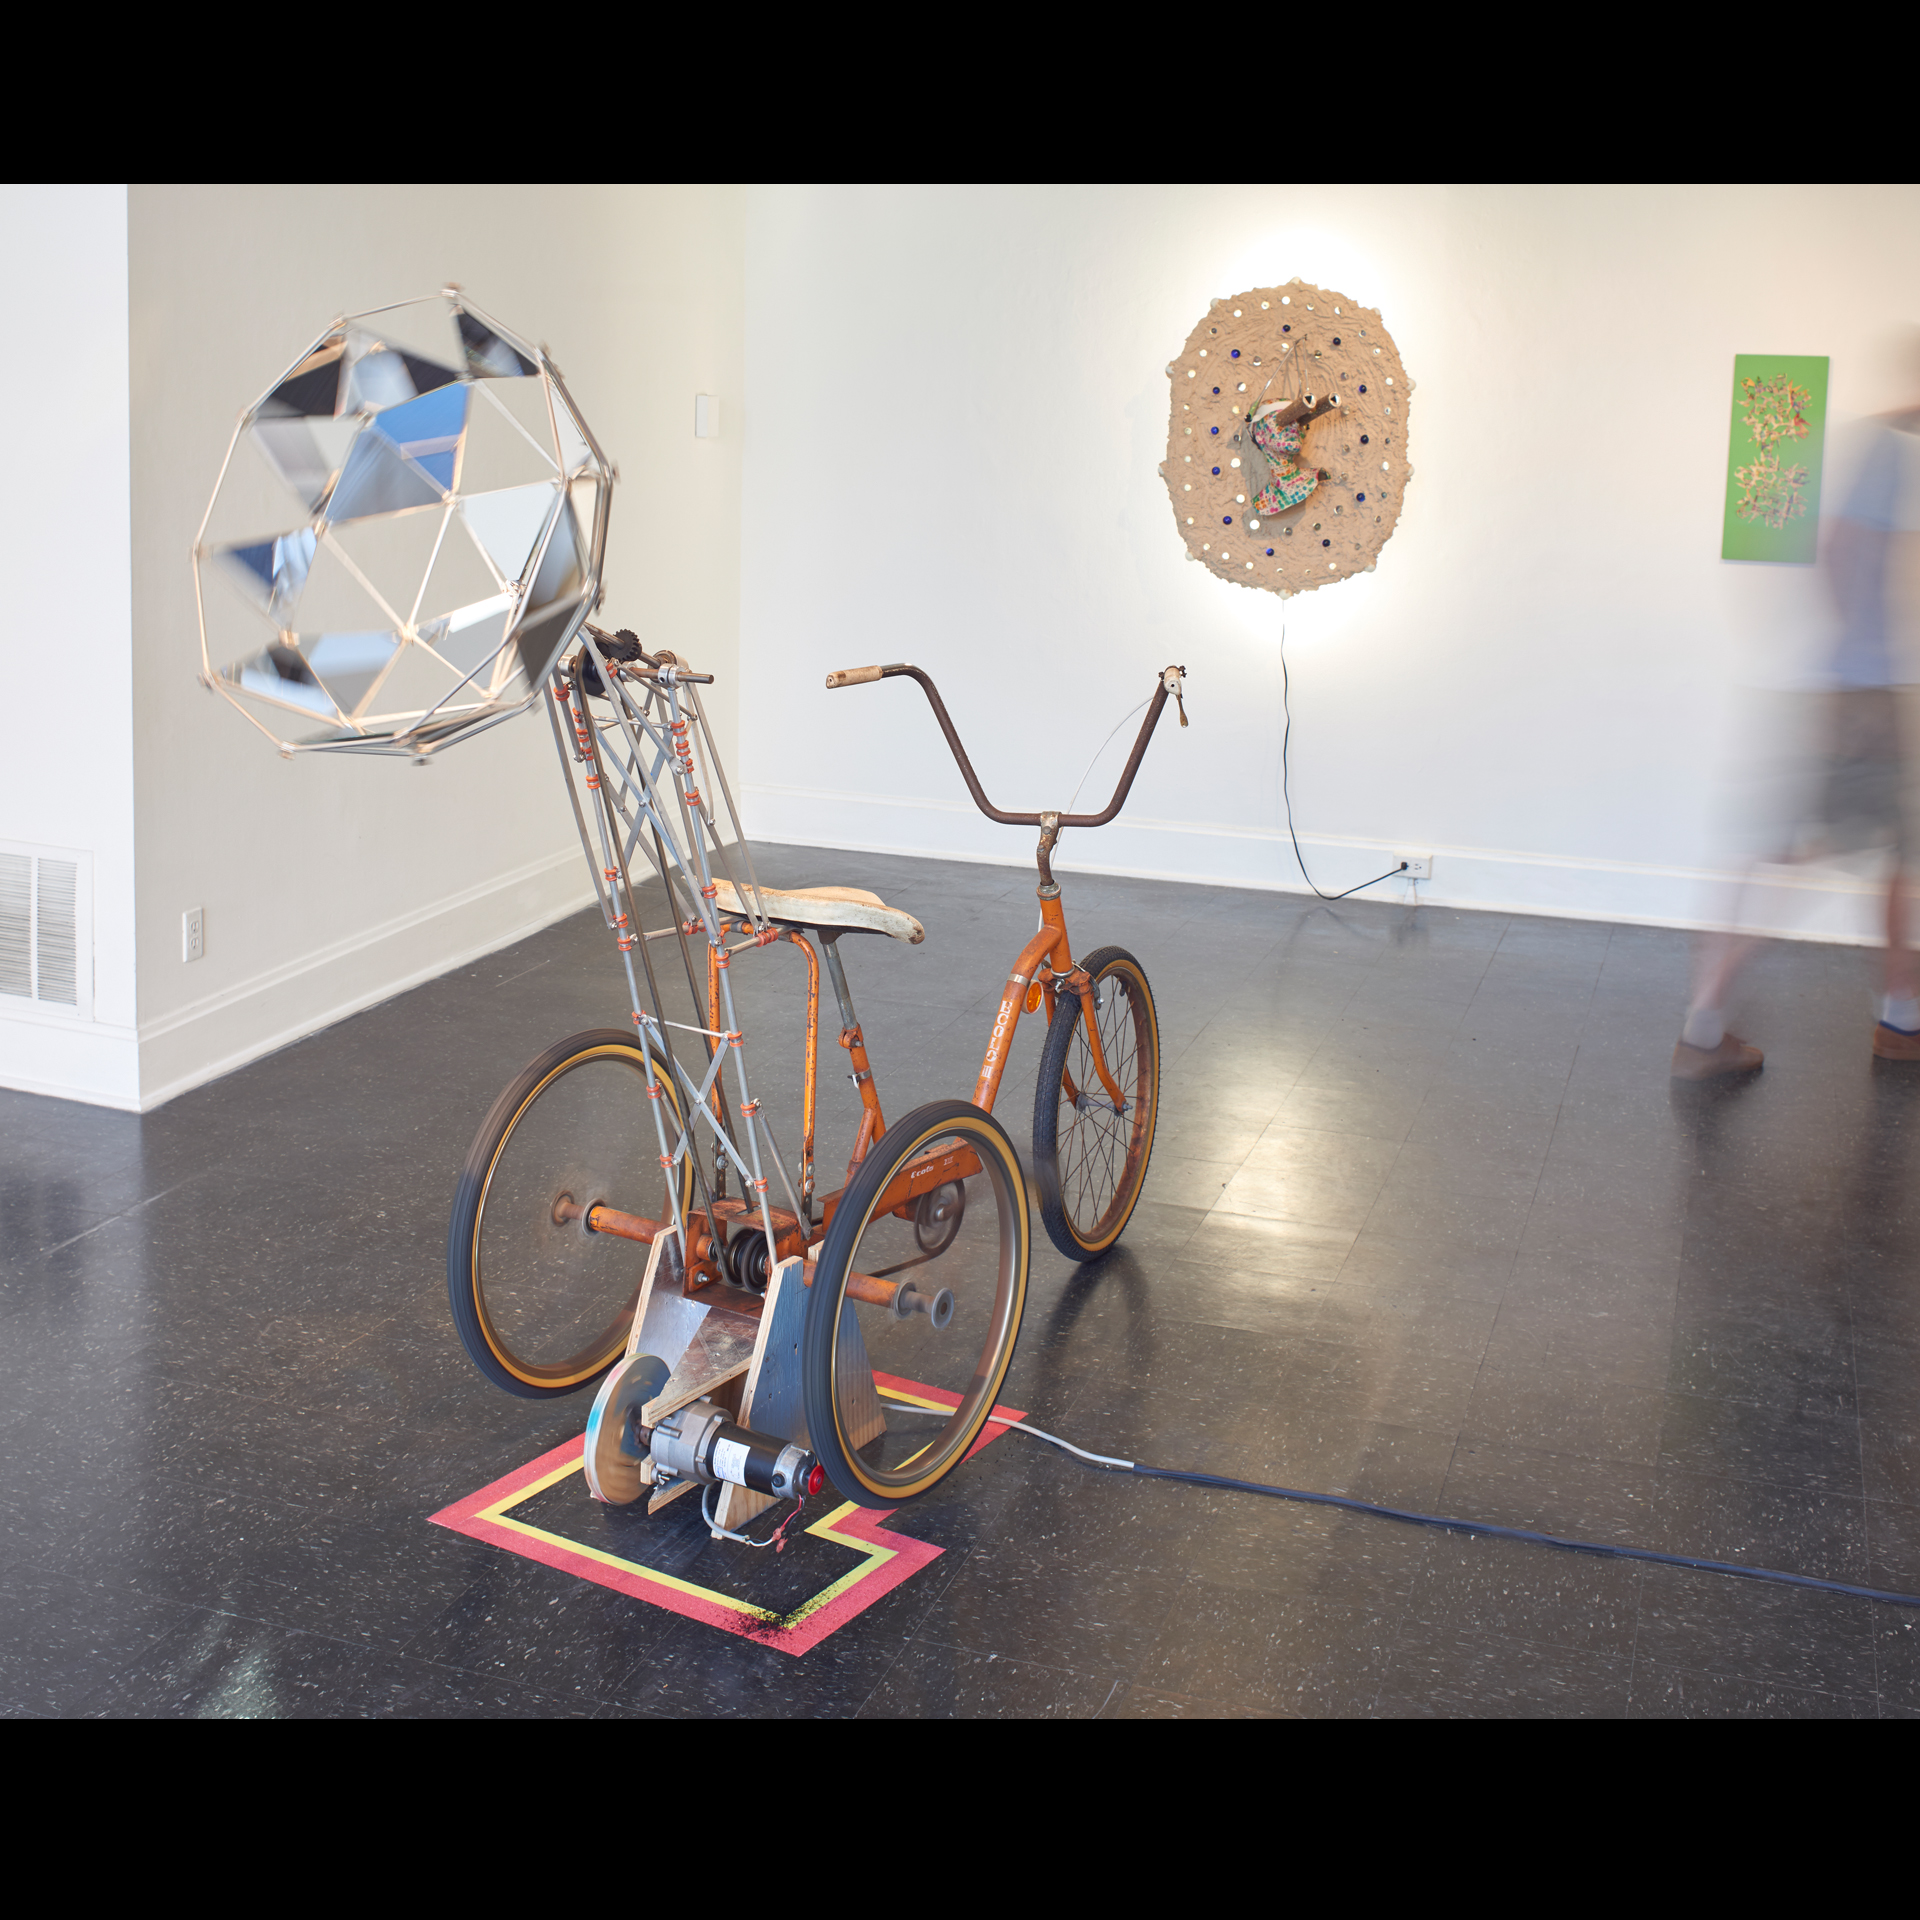 To define the 4th dimension of the glass world one must find the variables vibrating from the farthest cultural norms and well-traveled orbits of the masses; They must be so far off the atomic grid that they redefine it. The artists in this exhibition engage space, time, and pseudo-science with the sardonic wit of a home chemistry enthusiast.                                 Curators R. Rader & B. Wright